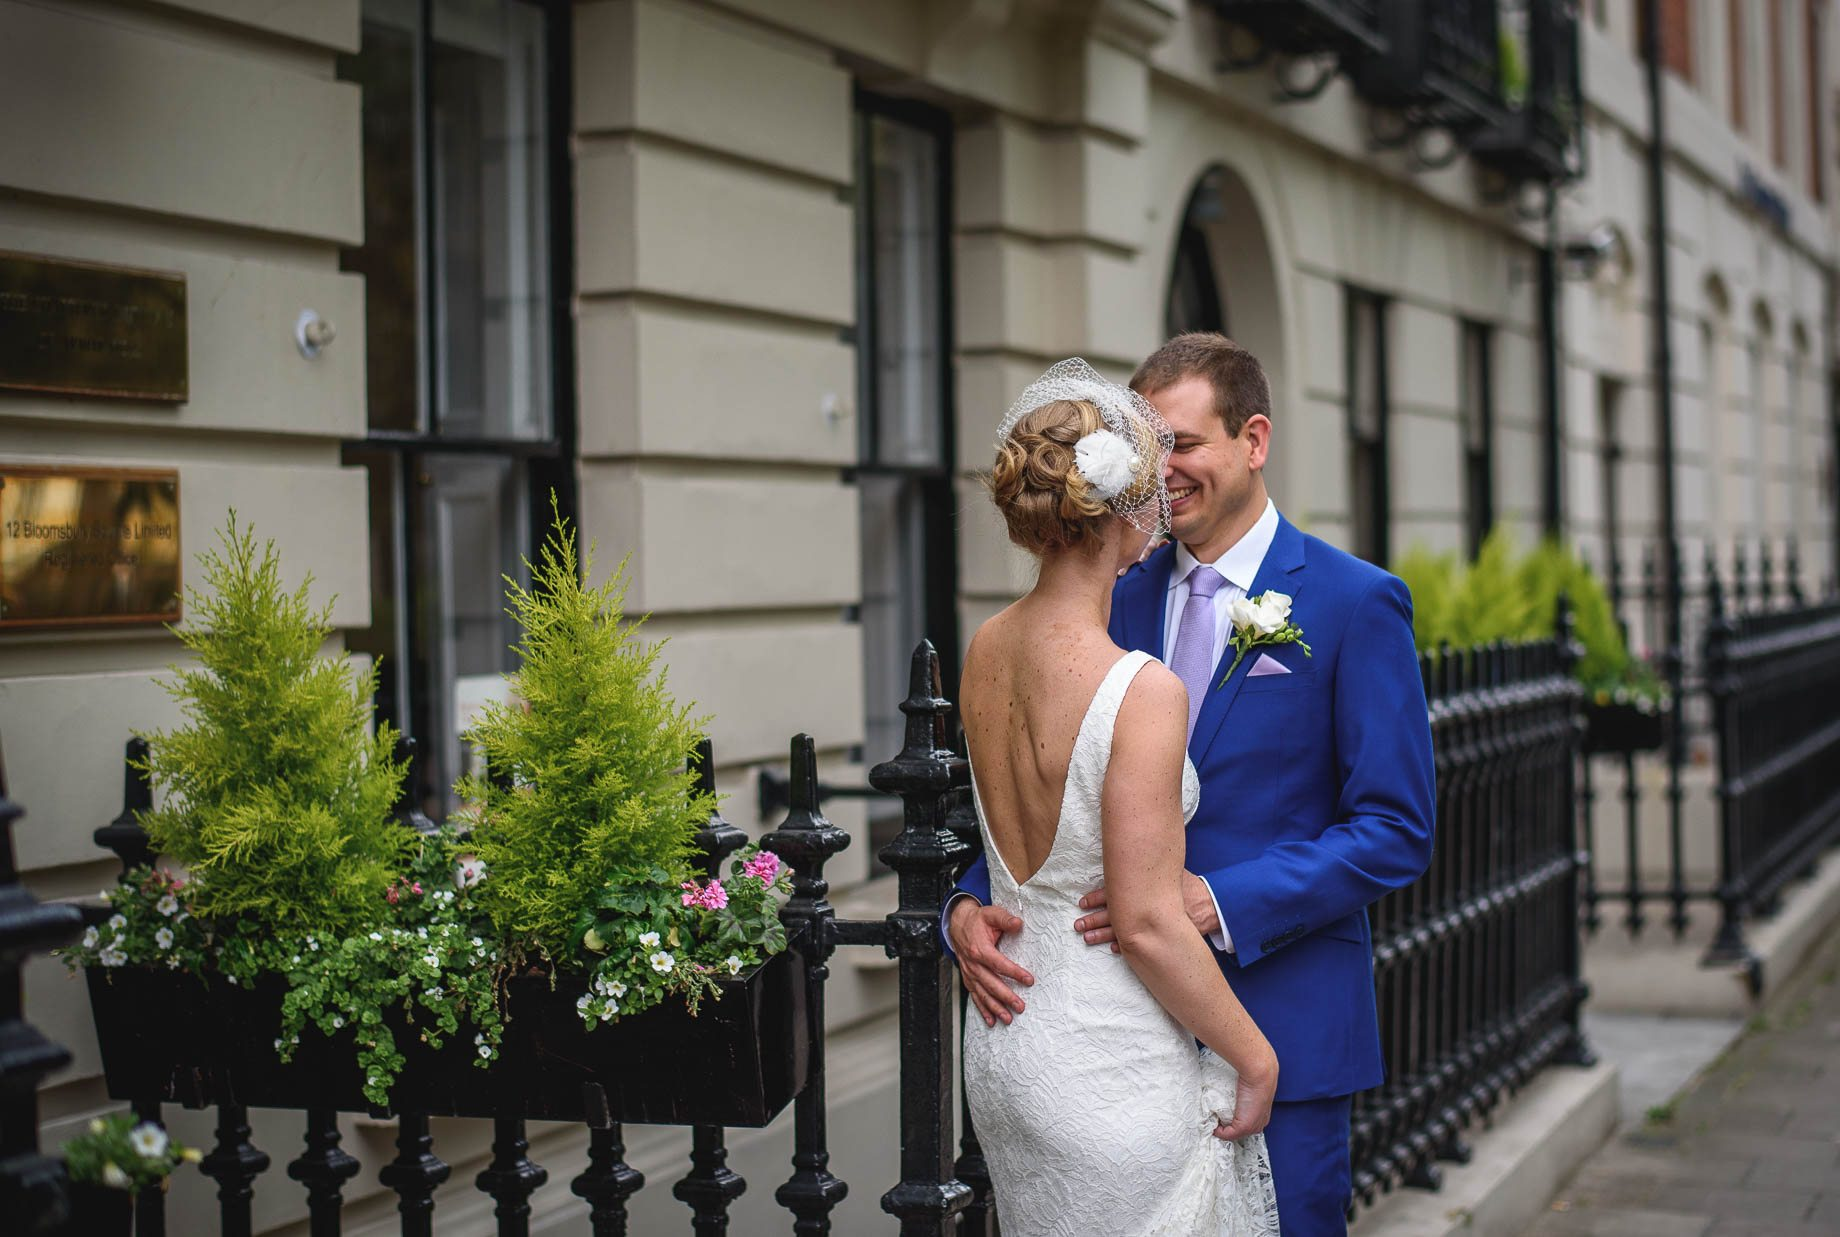 Bllomsbury House wedding photography in London - Katie and Taylor (84 of 156)